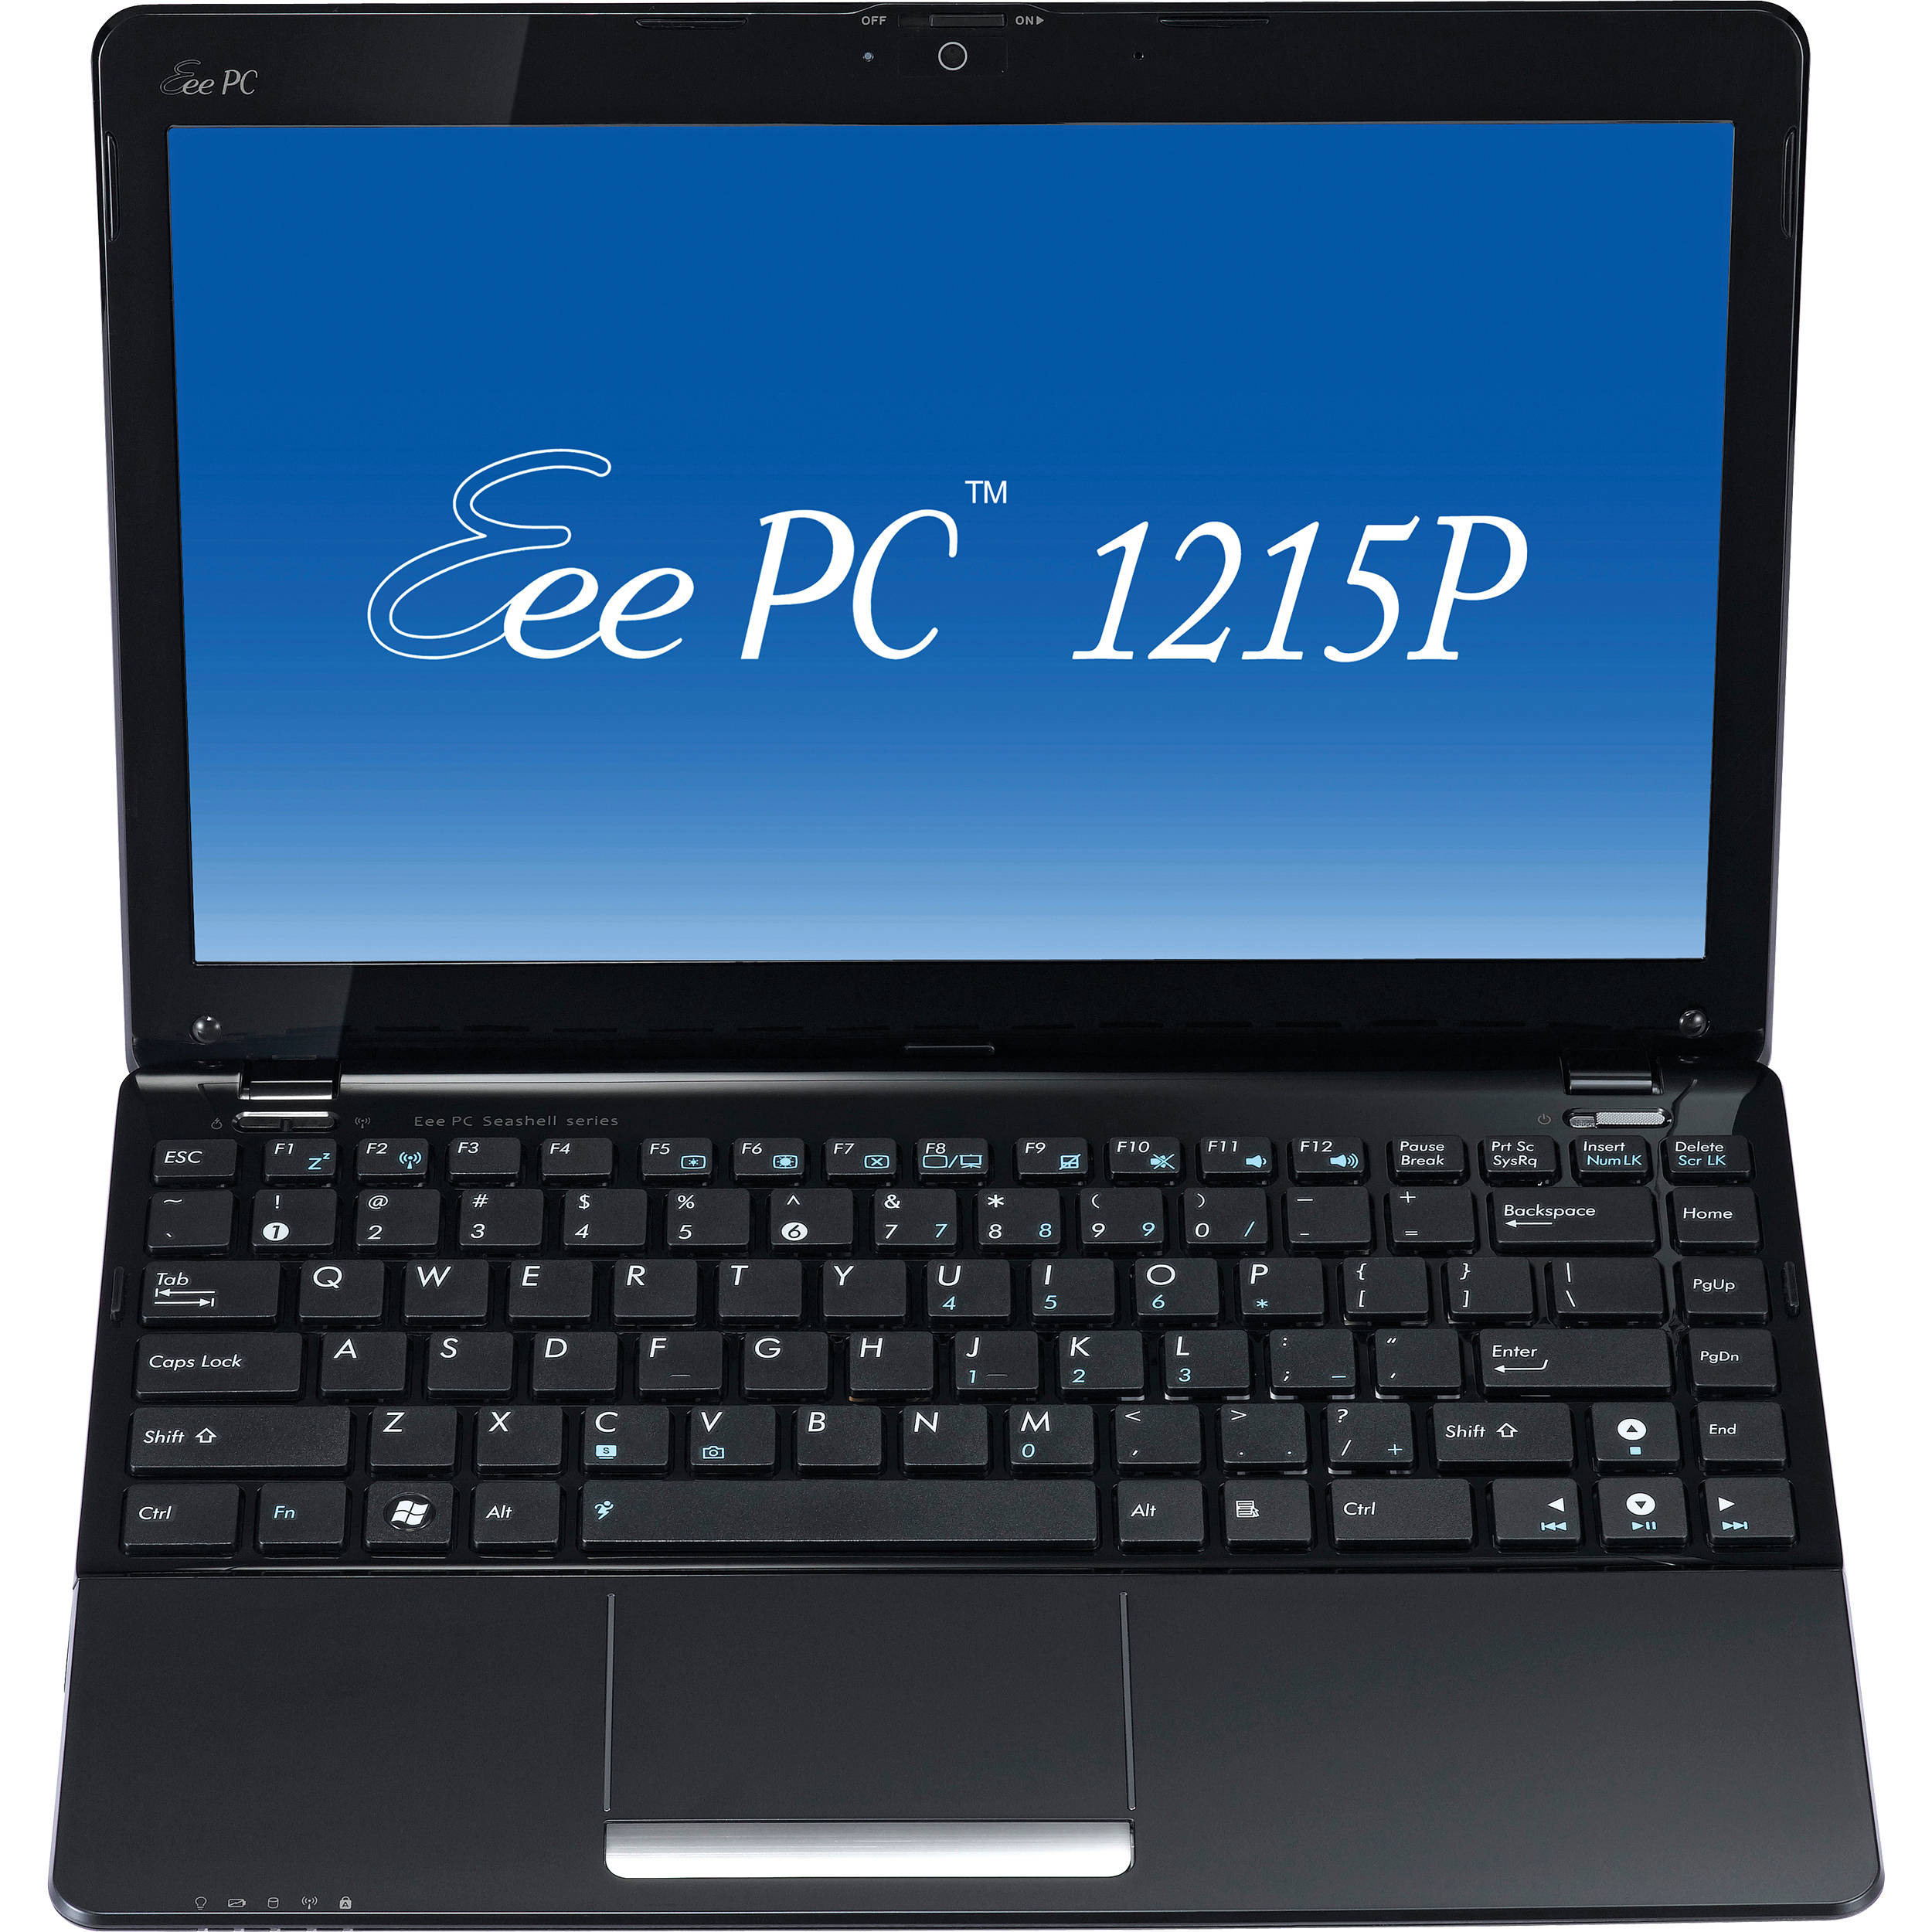 asus eee pc seashell user manual how to and user guide instructions u2022 rh taxibermuda co Asus Eee PC 4G asus eee pc 1005pe manual